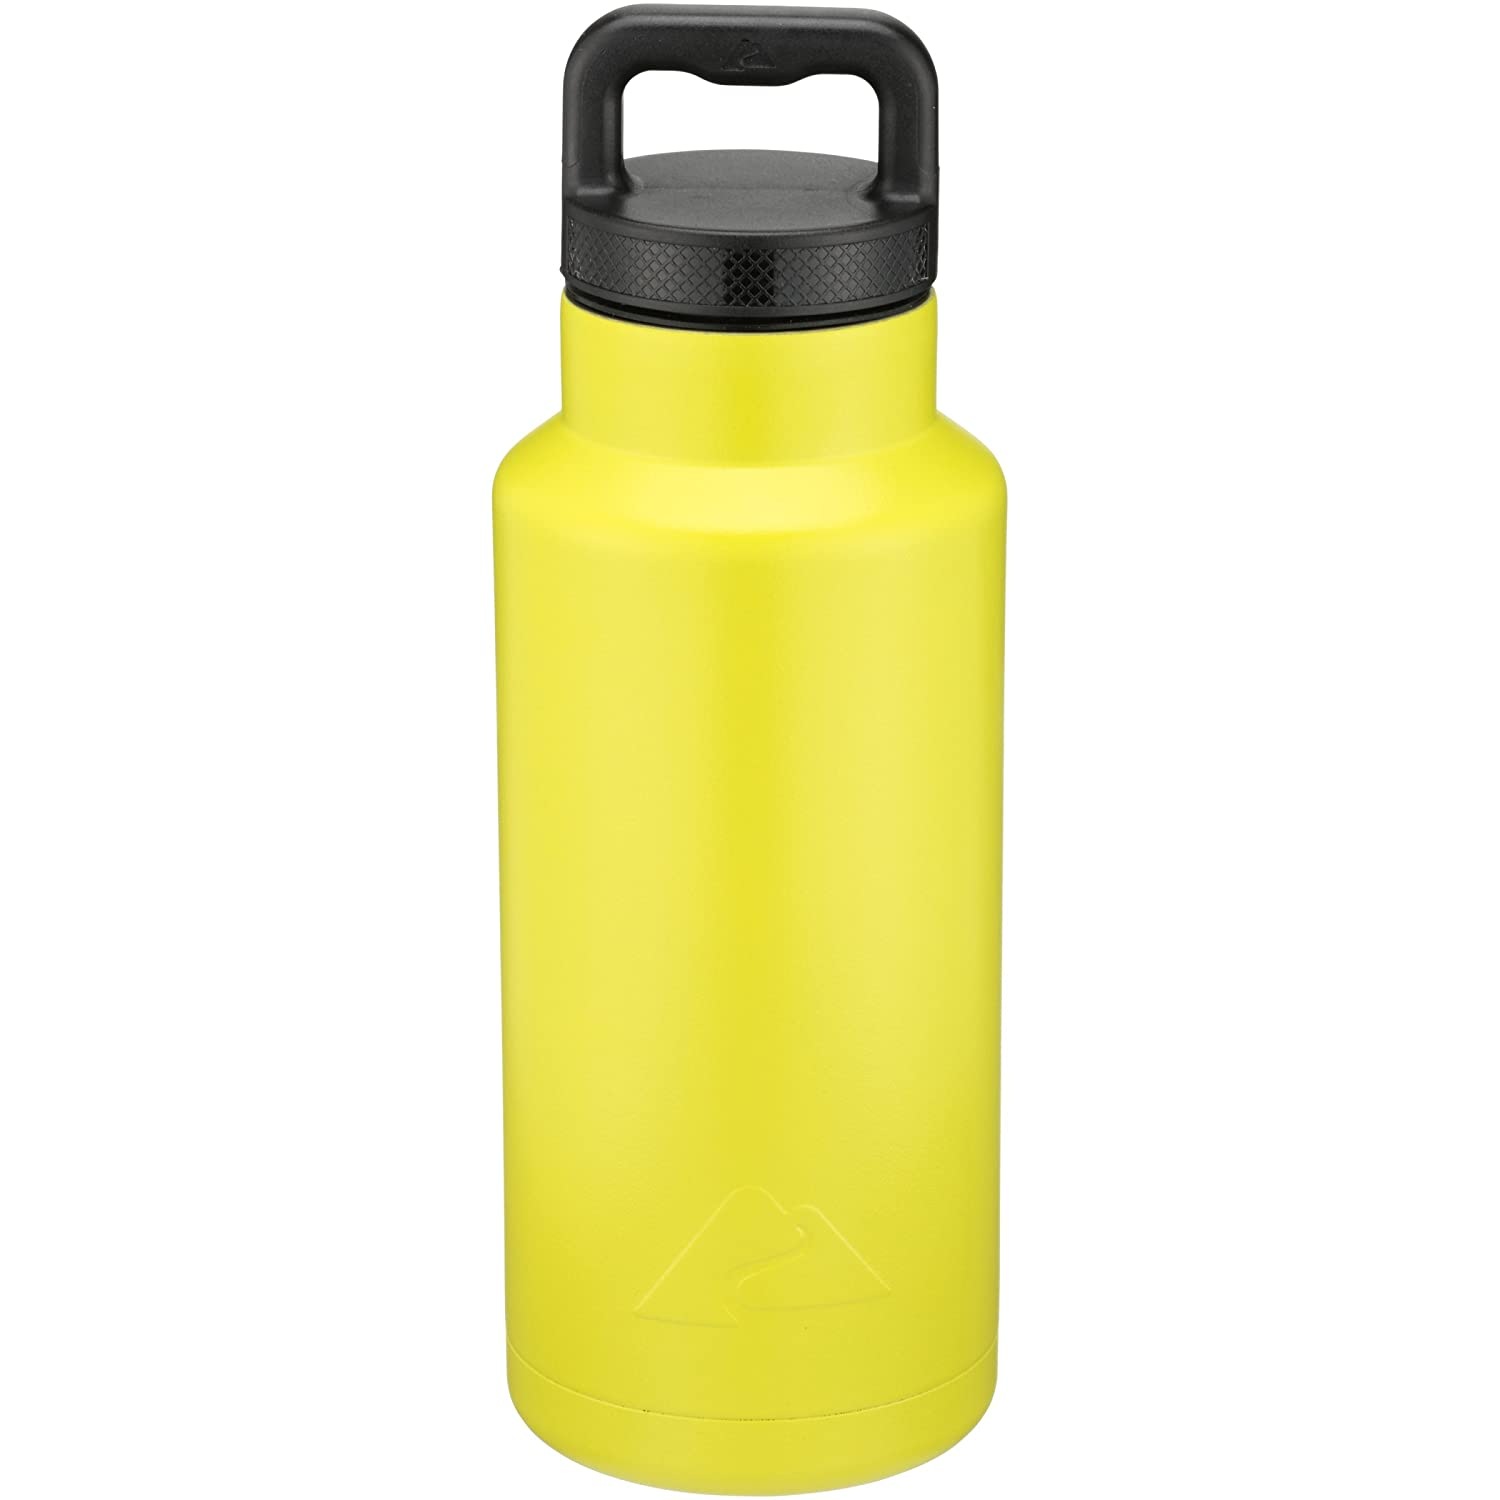 f4e1797949 Amazon.com   Ozark Trail Double Wall Stainless Steel Water Bottle 36oz  Chili Lime: Glassware & Drinkware